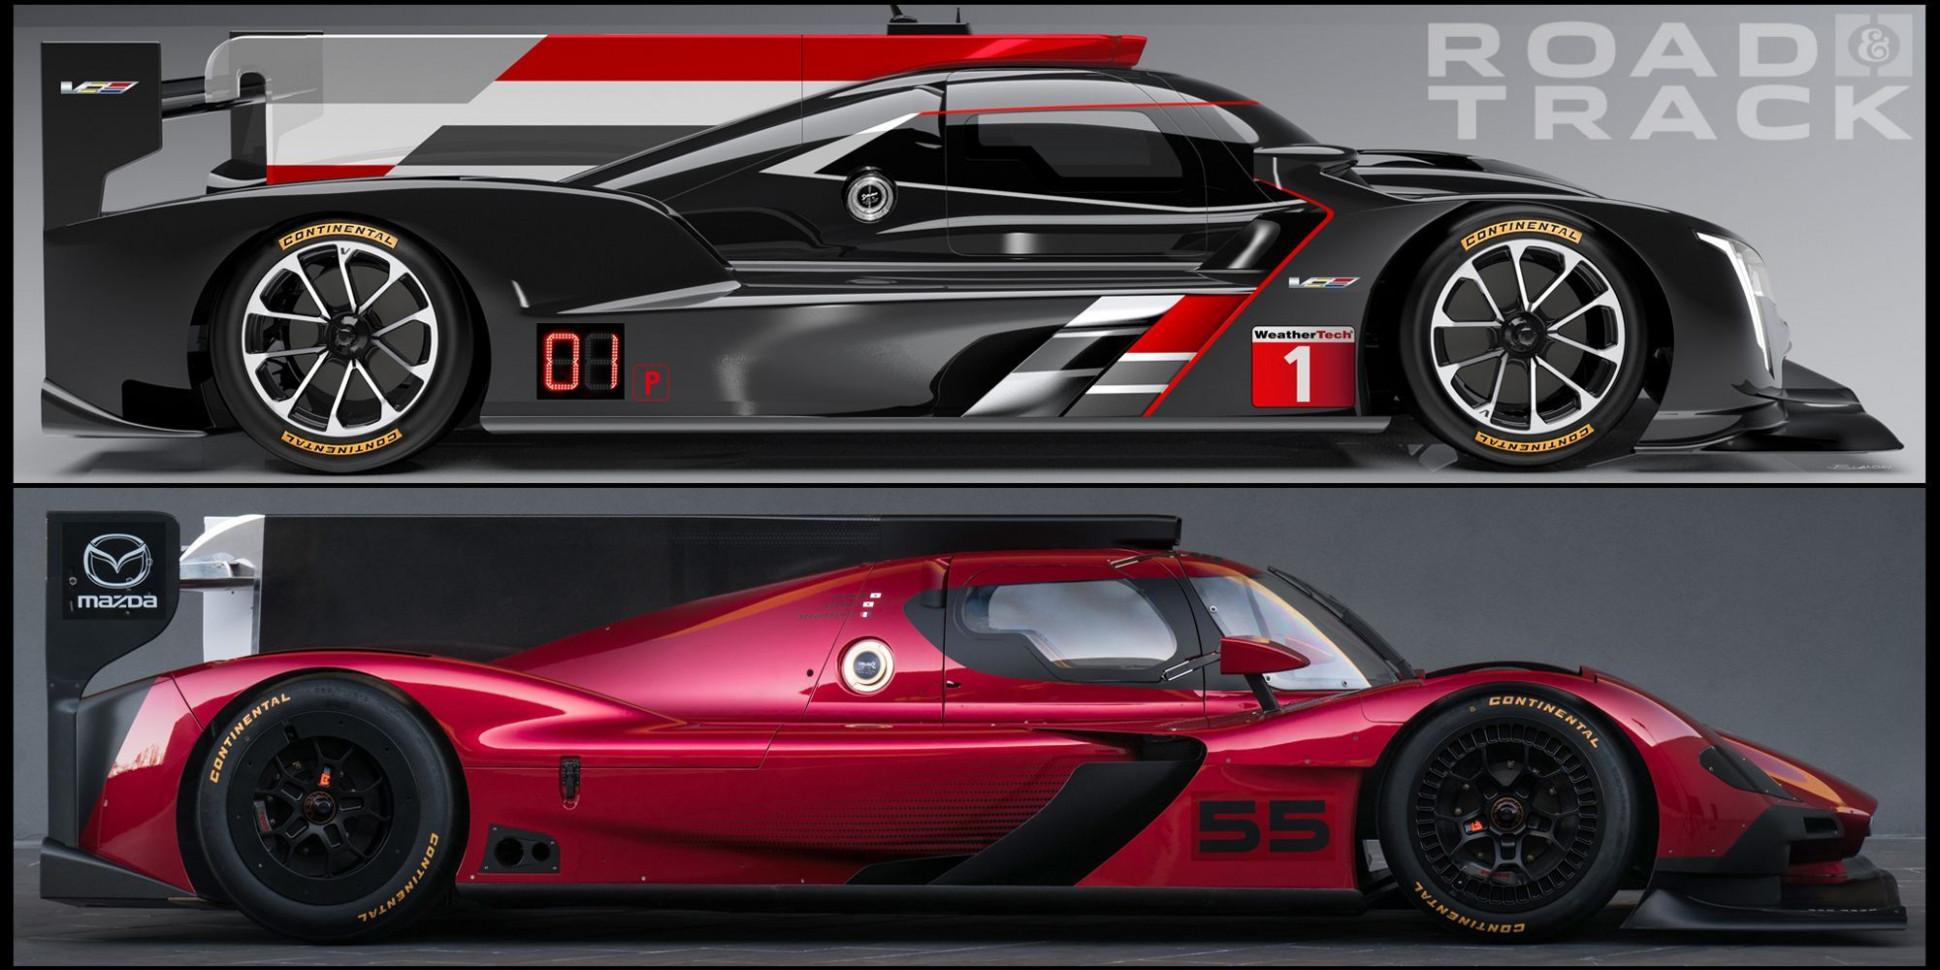 6 mazda dpi New Review 6*6 - 6 mazda dpi Overview and ..